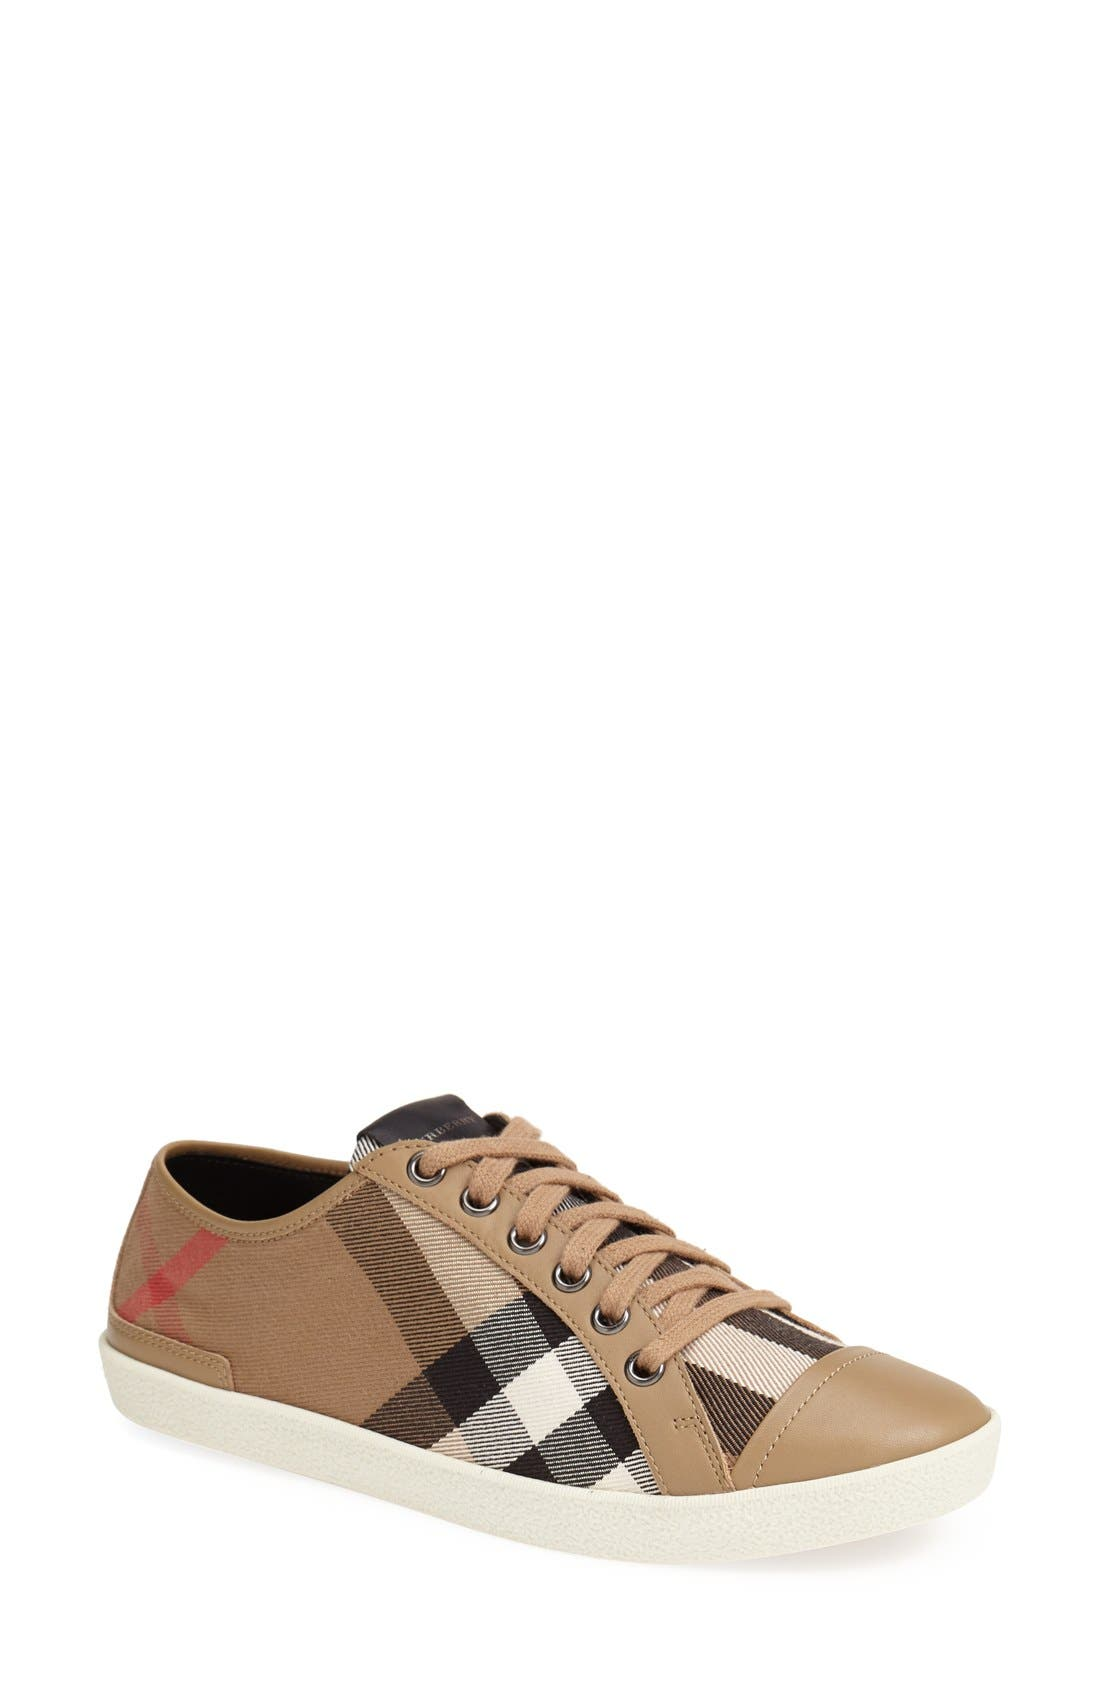 Main Image - Burberry Check Print Sneaker (Women)